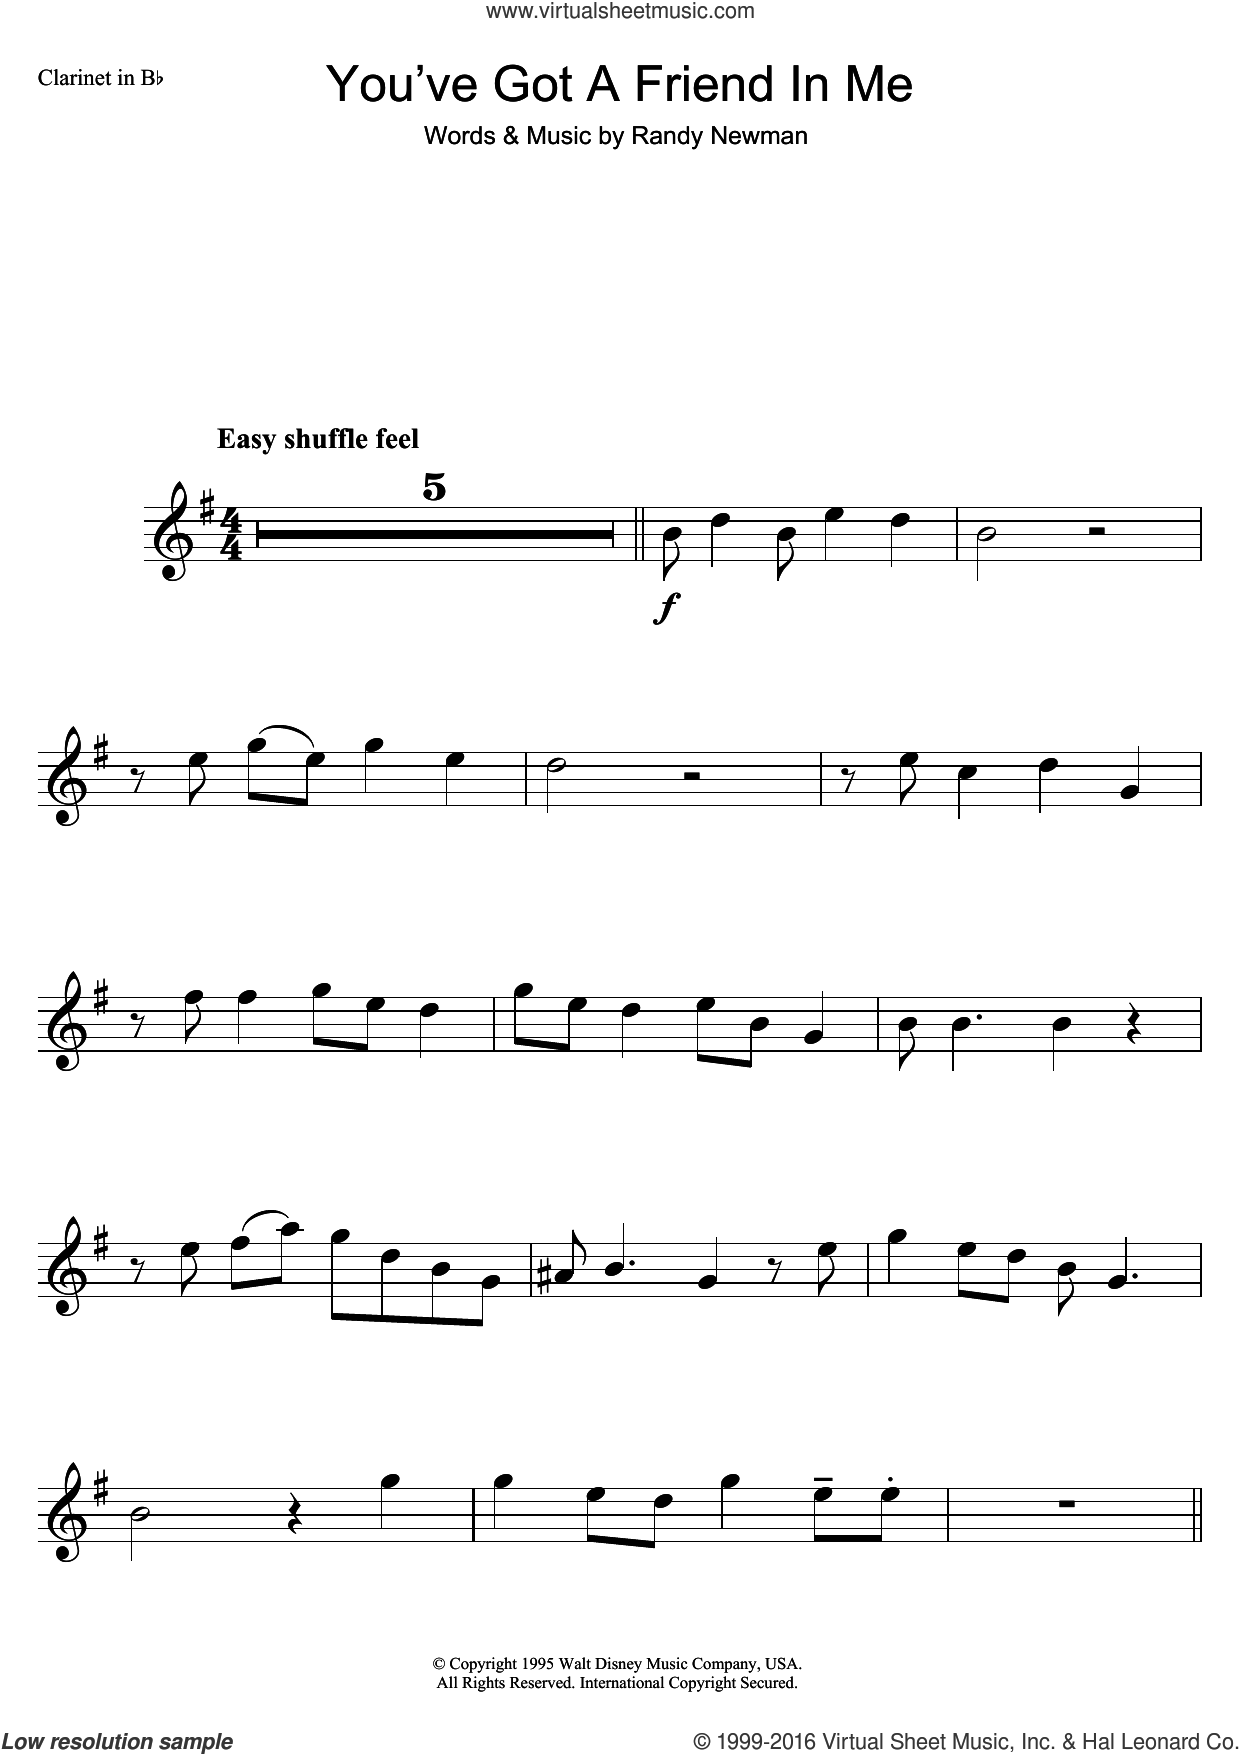 You've Got A Friend In Me (from Disney's Toy Story) sheet music for clarinet solo by Randy Newman, intermediate skill level